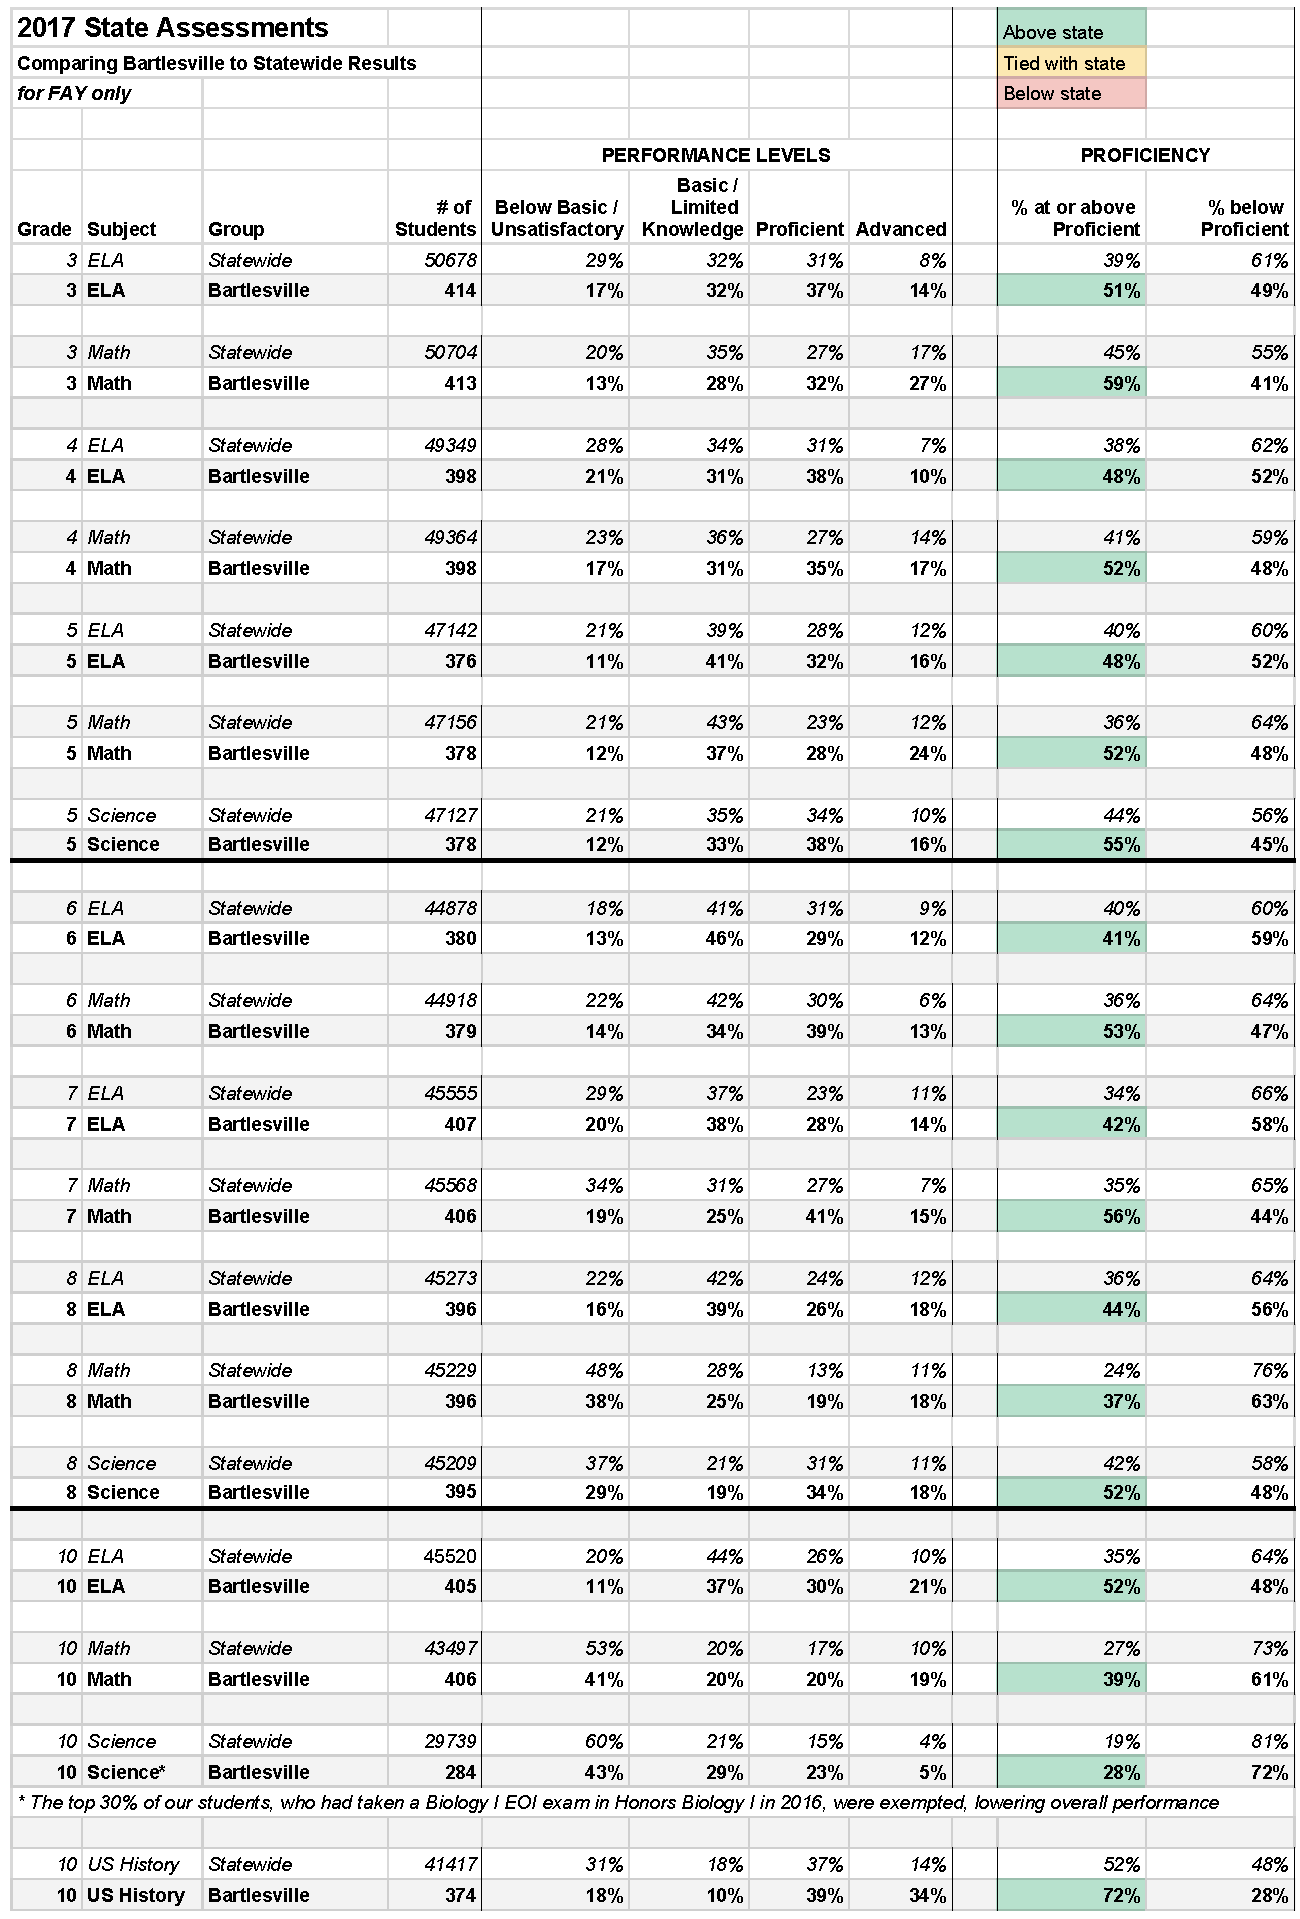 2017 FAY Results